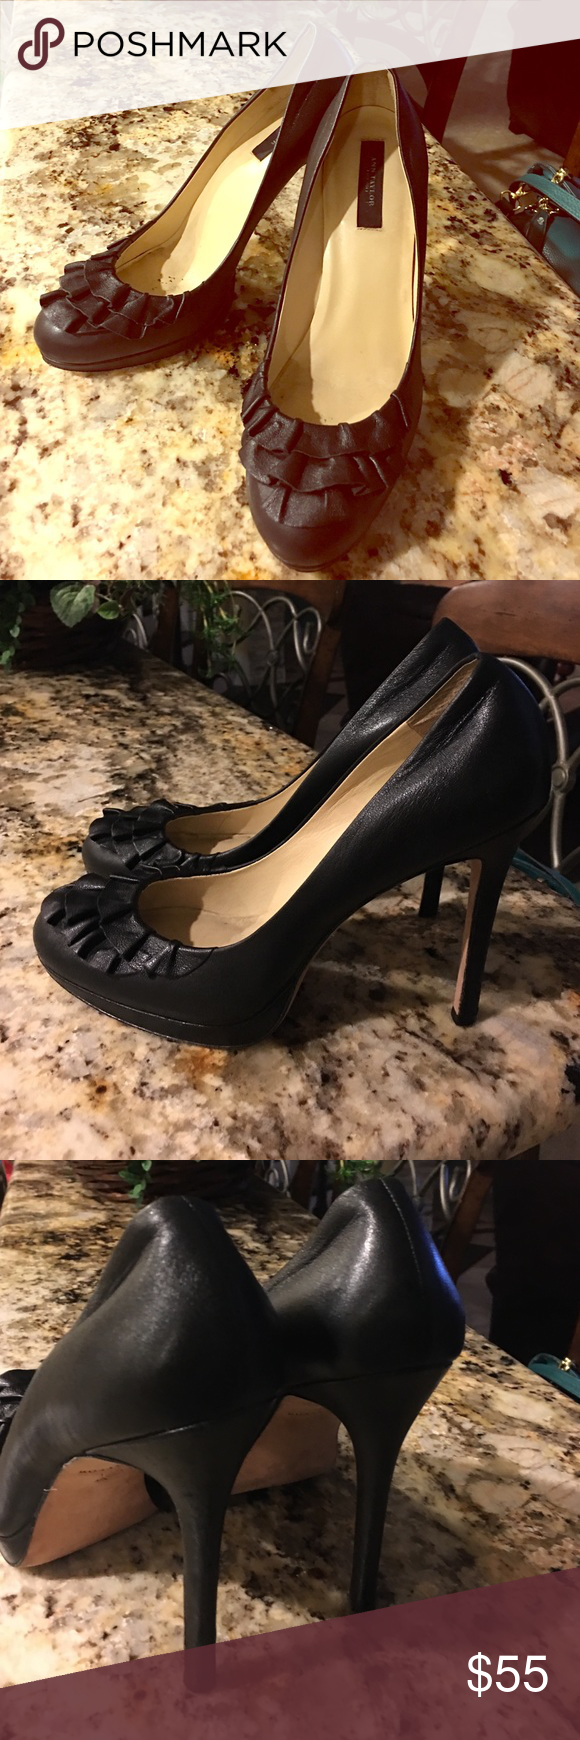 """Ann Taylor black pumps Ann Taylor black pumps with ruffles in the front. Beautiful and comfortable leather shoes. 4 1/2"""" heels. The marks inside the shoes come from the use but outside they are in excellent used condition. Ann Taylor Shoes Heels"""